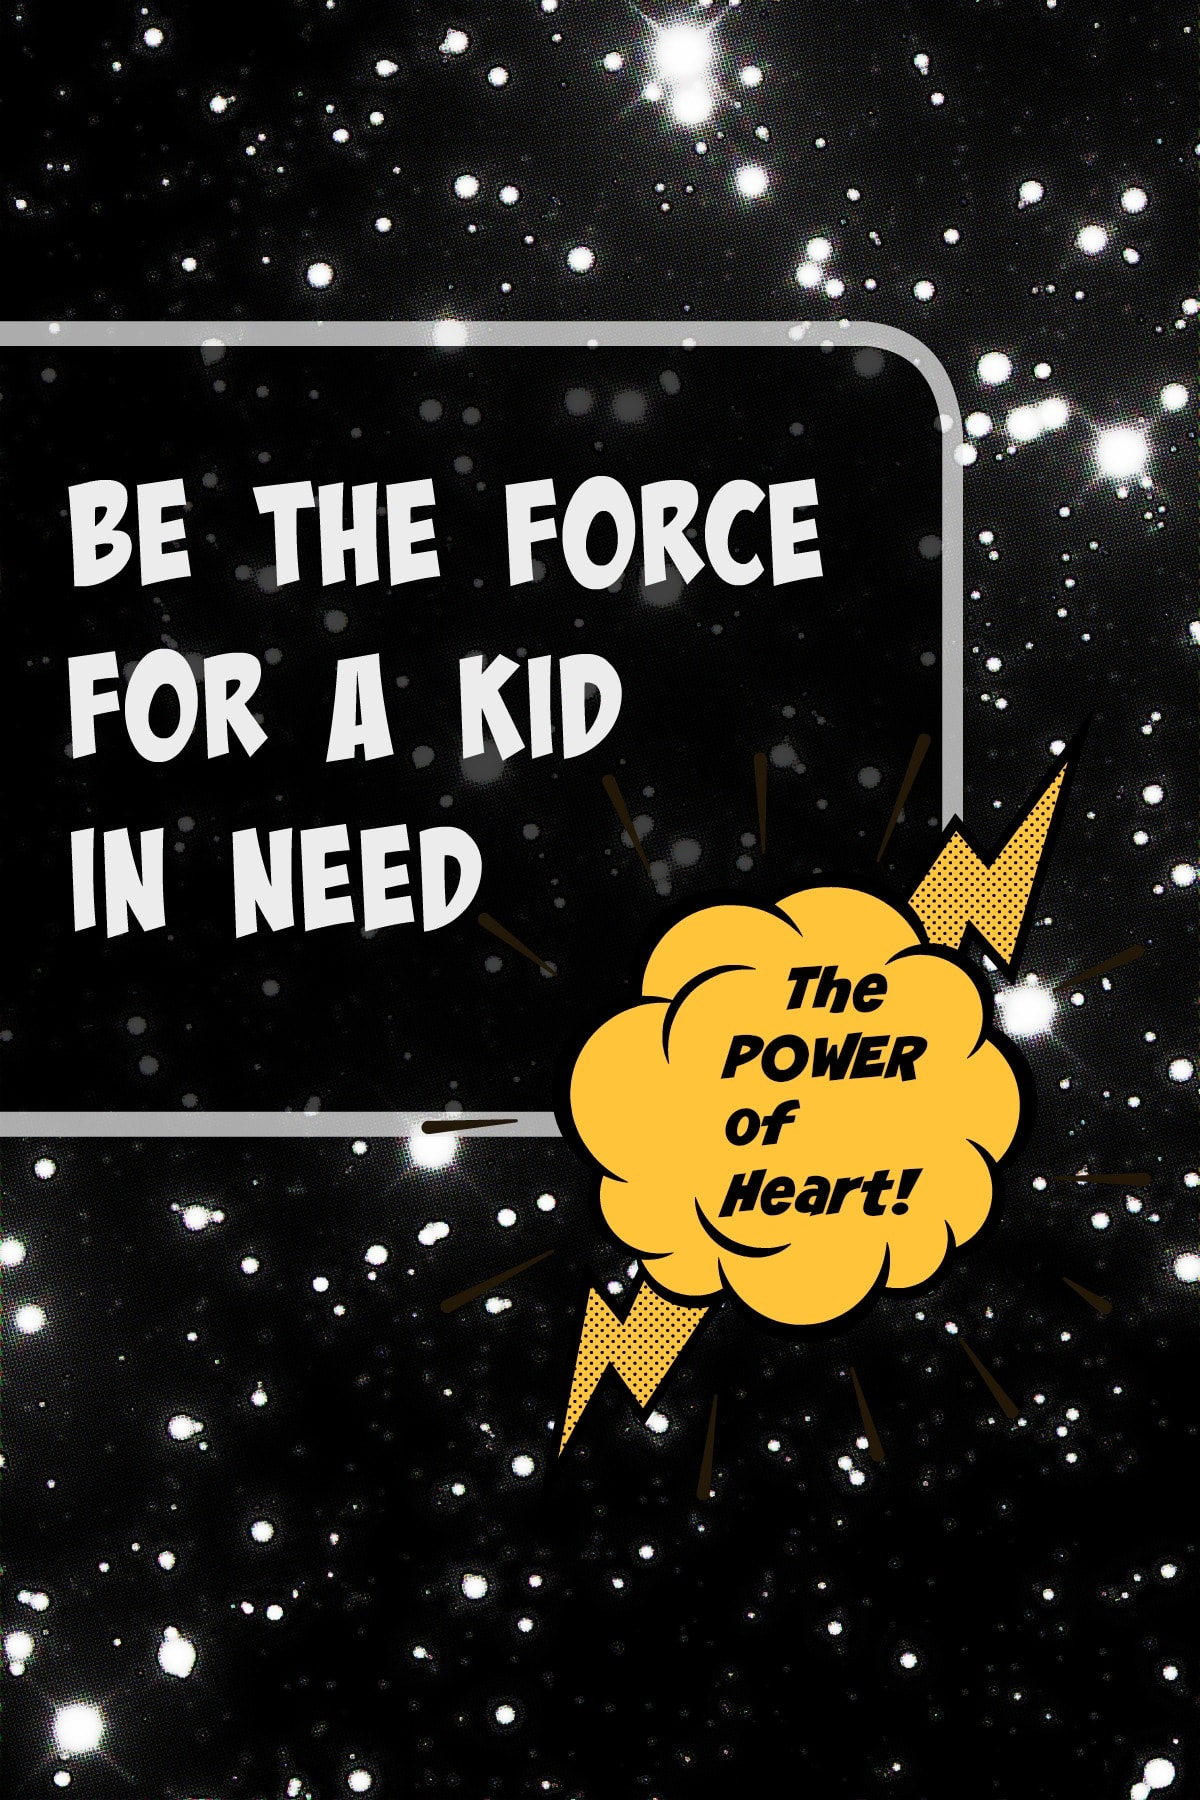 May the Force Be With You – Be The Force For A Kid In Need